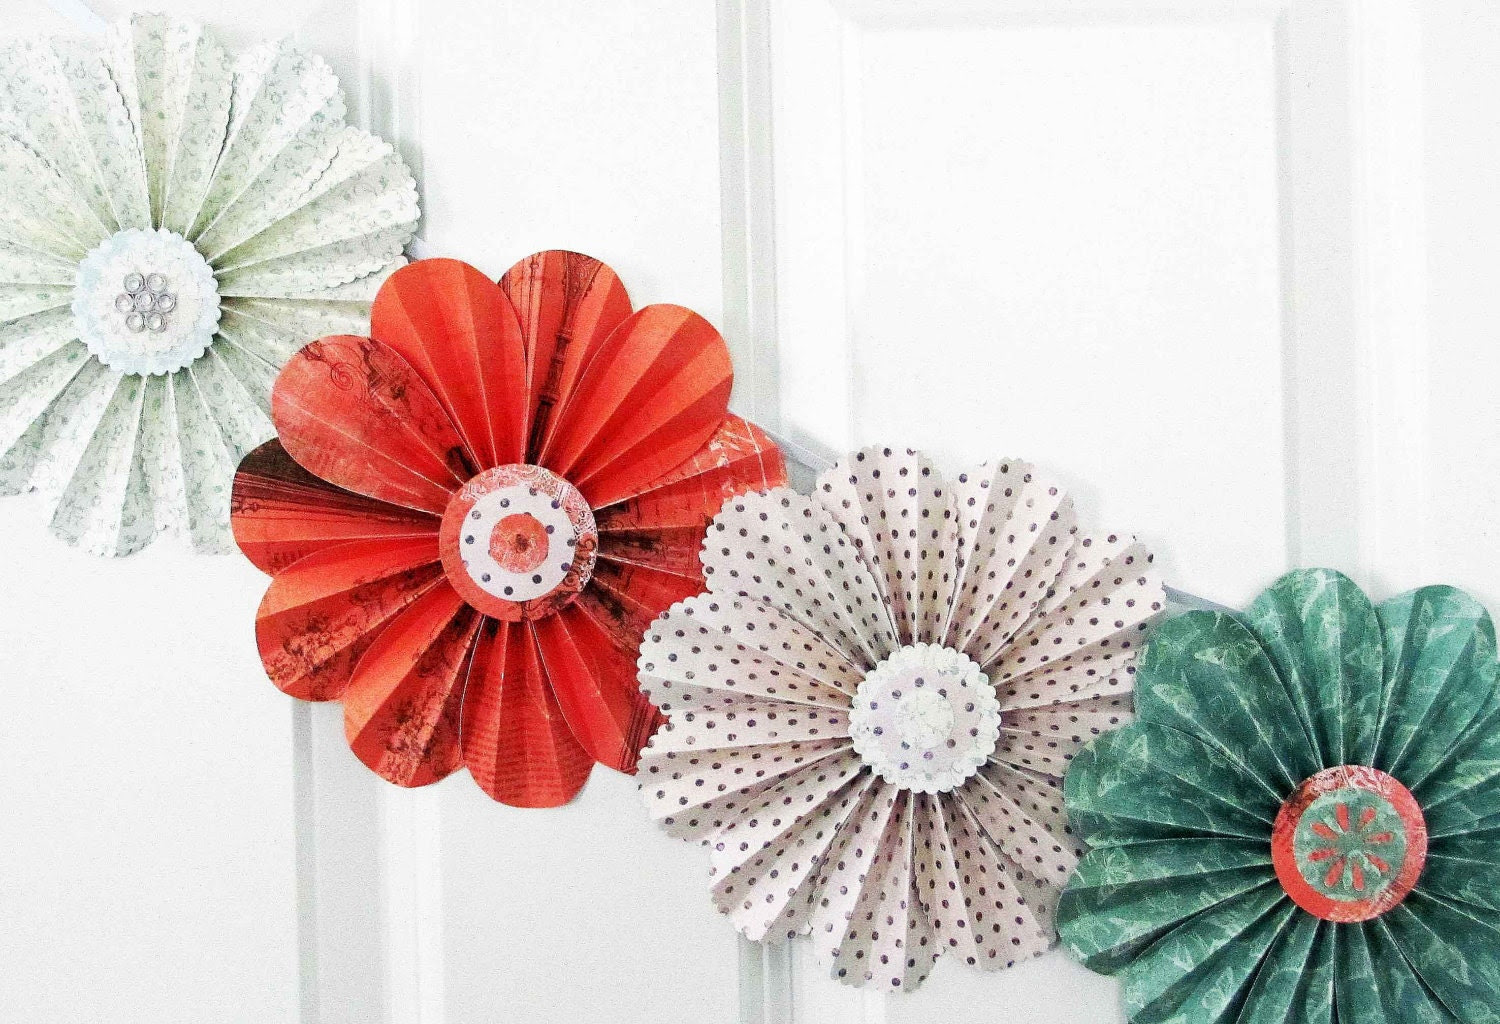 paper flowers floral garland party decor home wall by SheShell